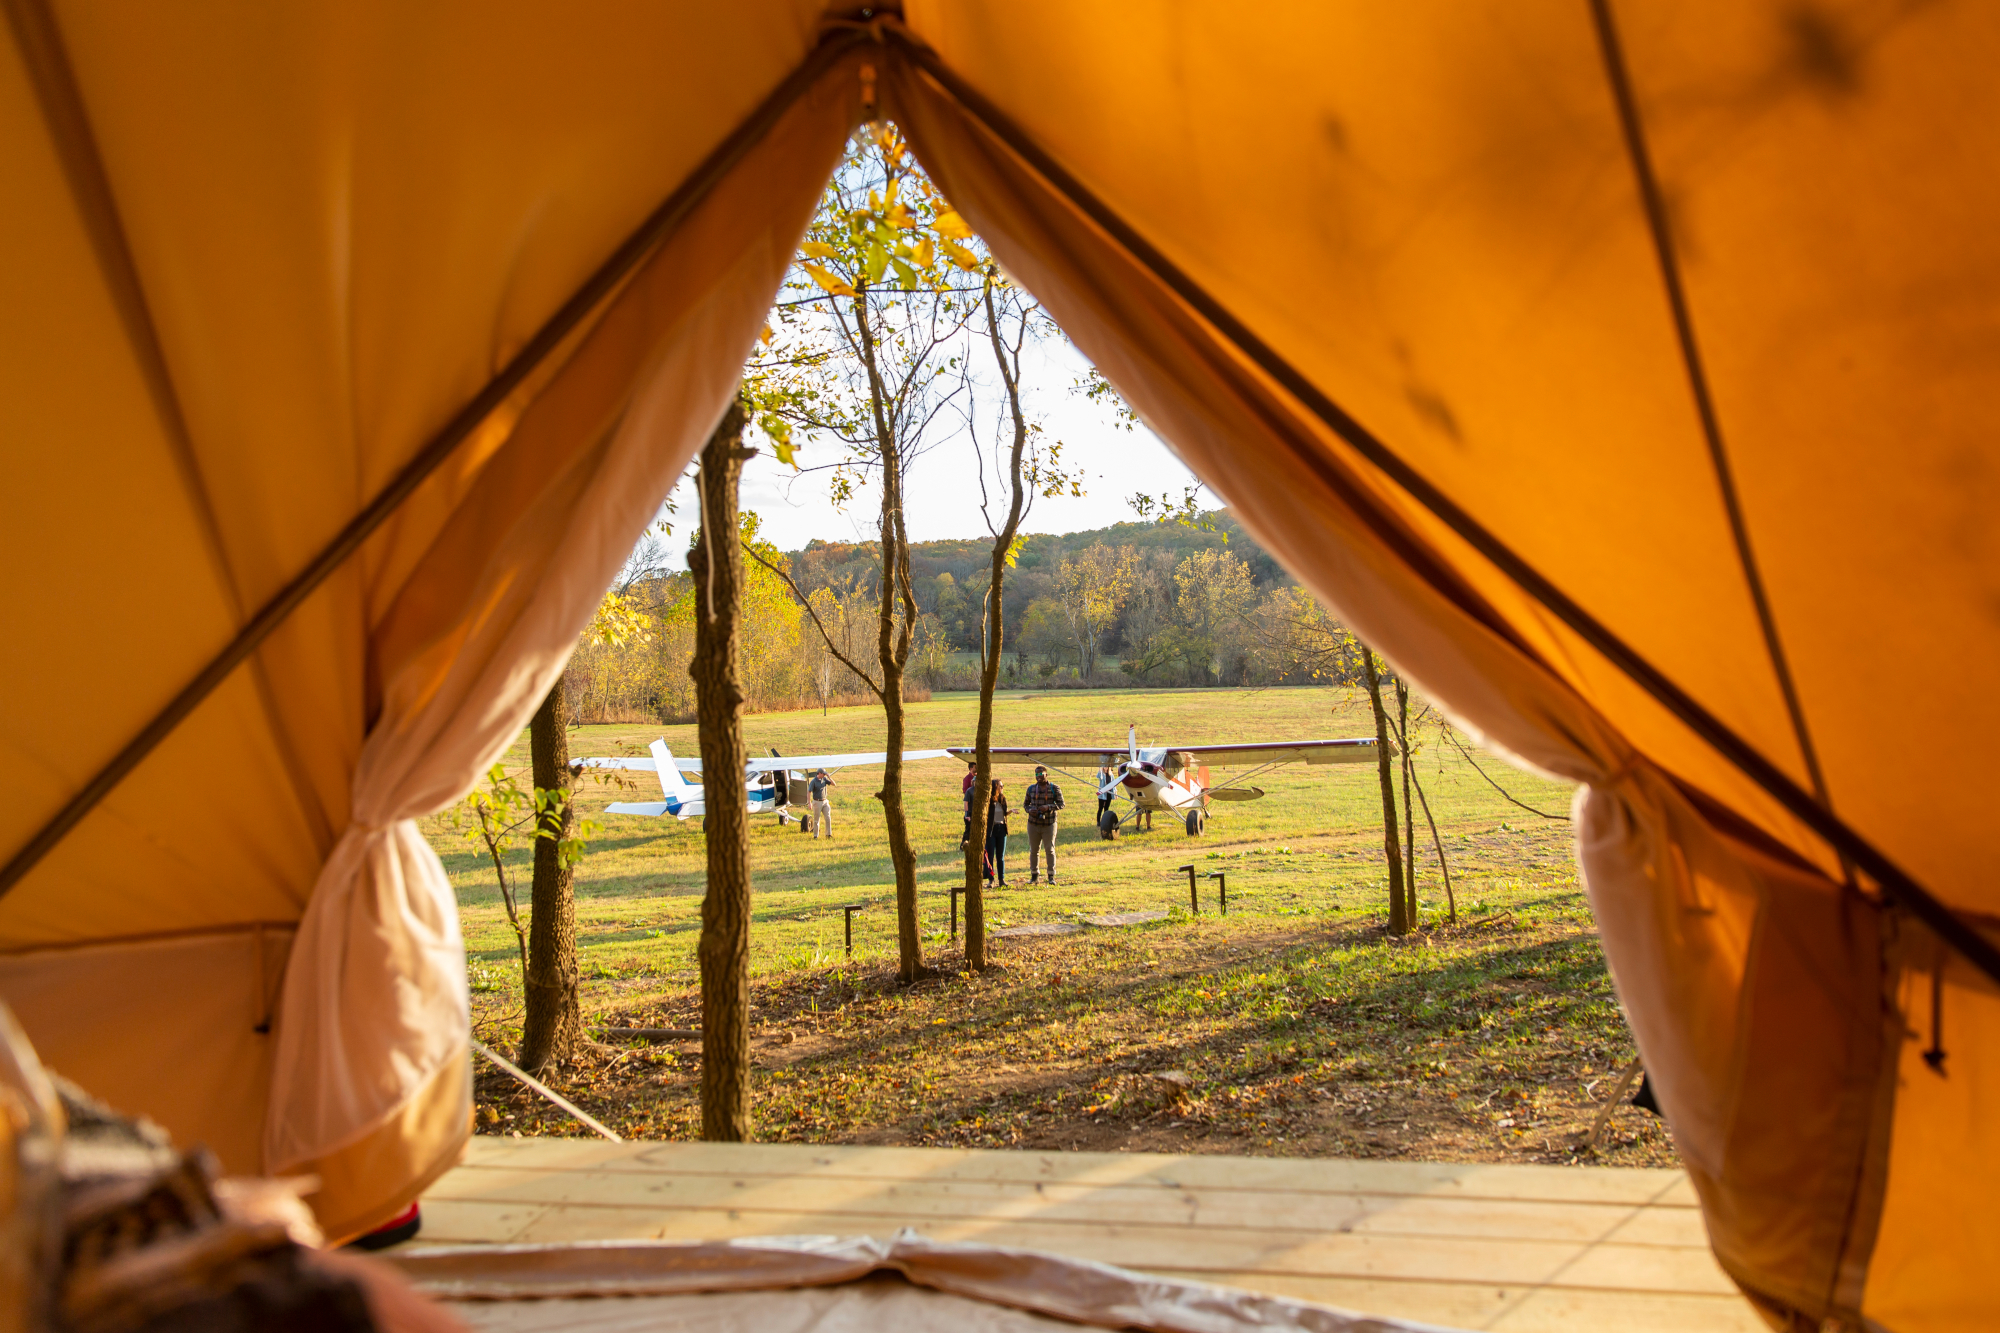 View from a glamping tent in Arkansas.